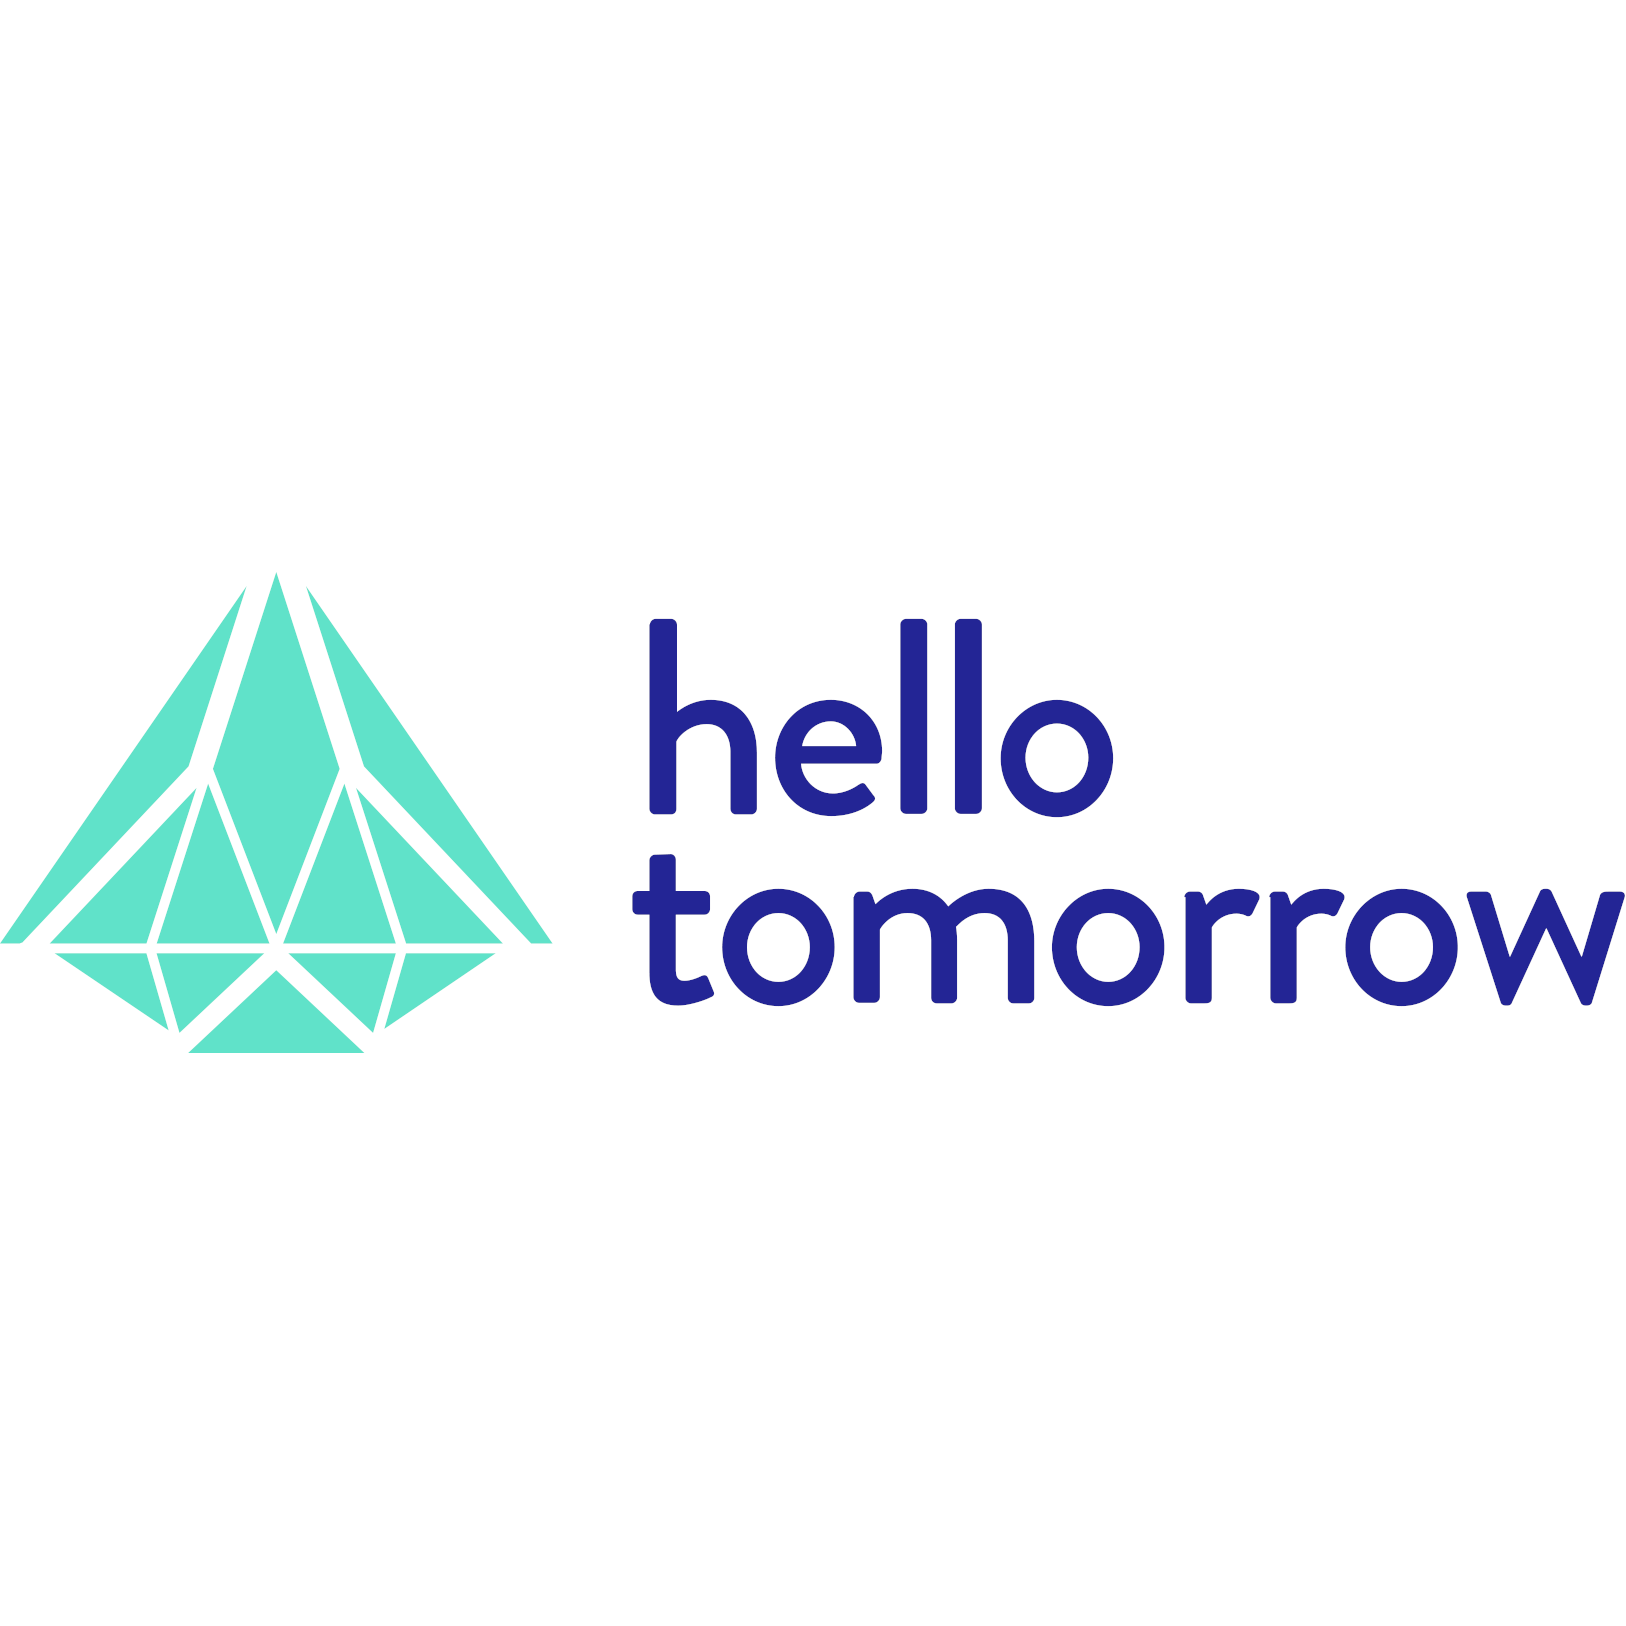 Hello Tomorrow logo